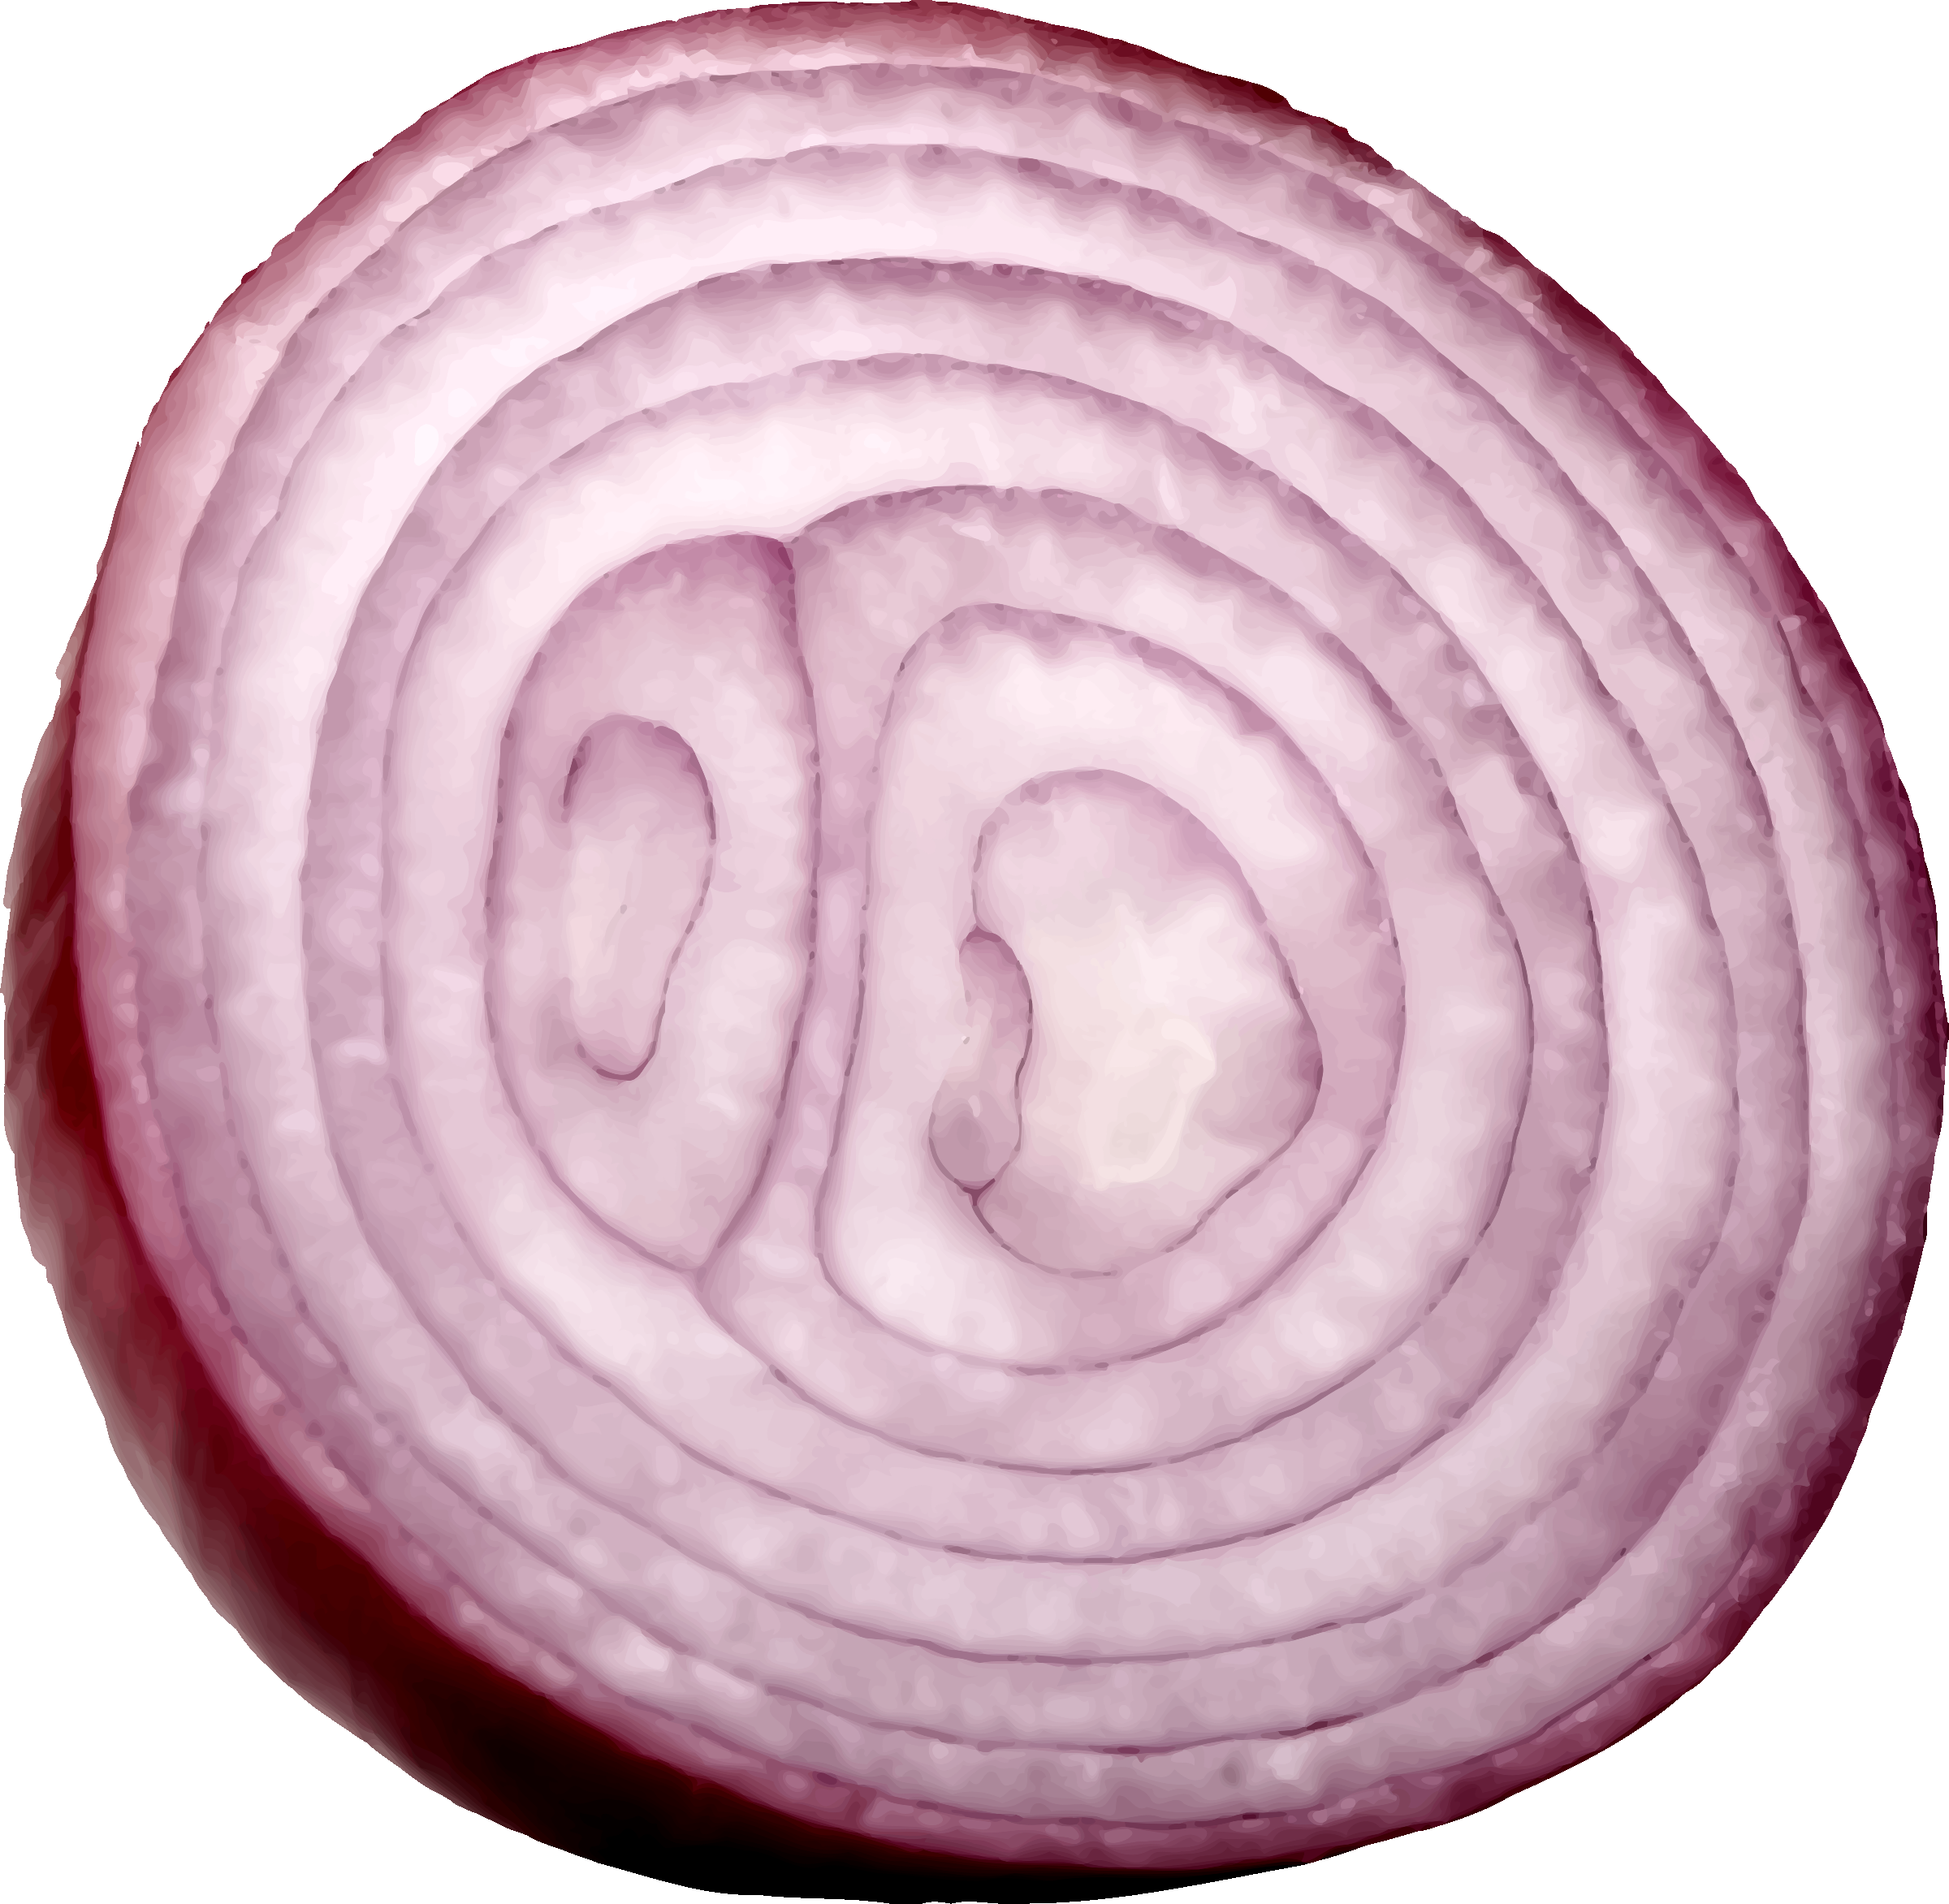 Cut big image png. Onion clipart red onion